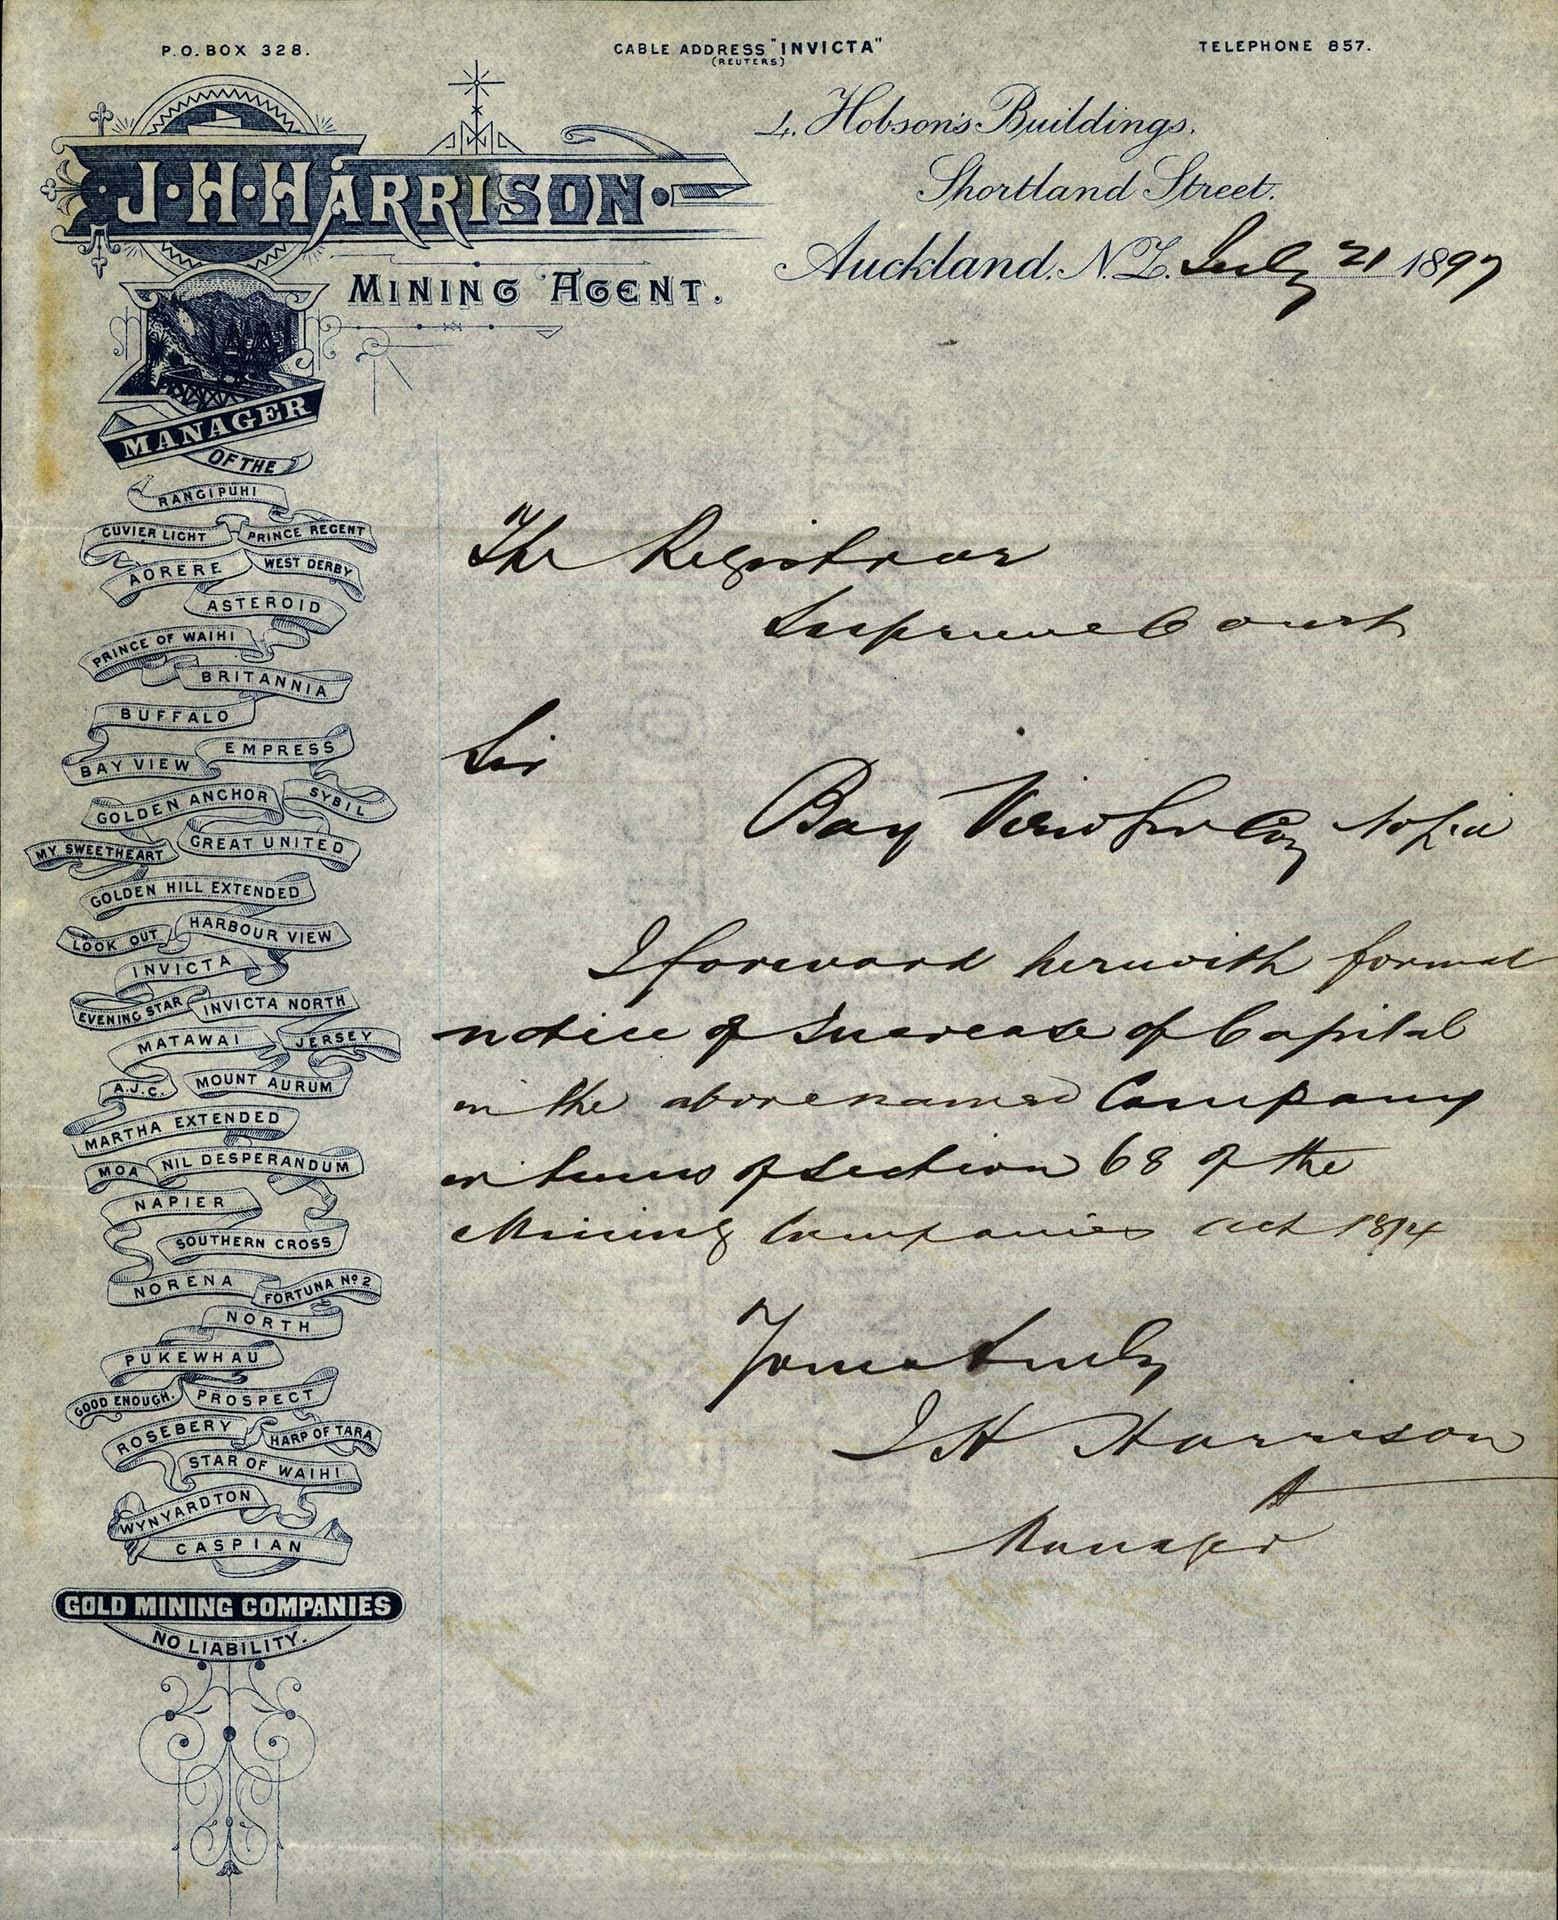 Handwritten registration file with branded letterhead